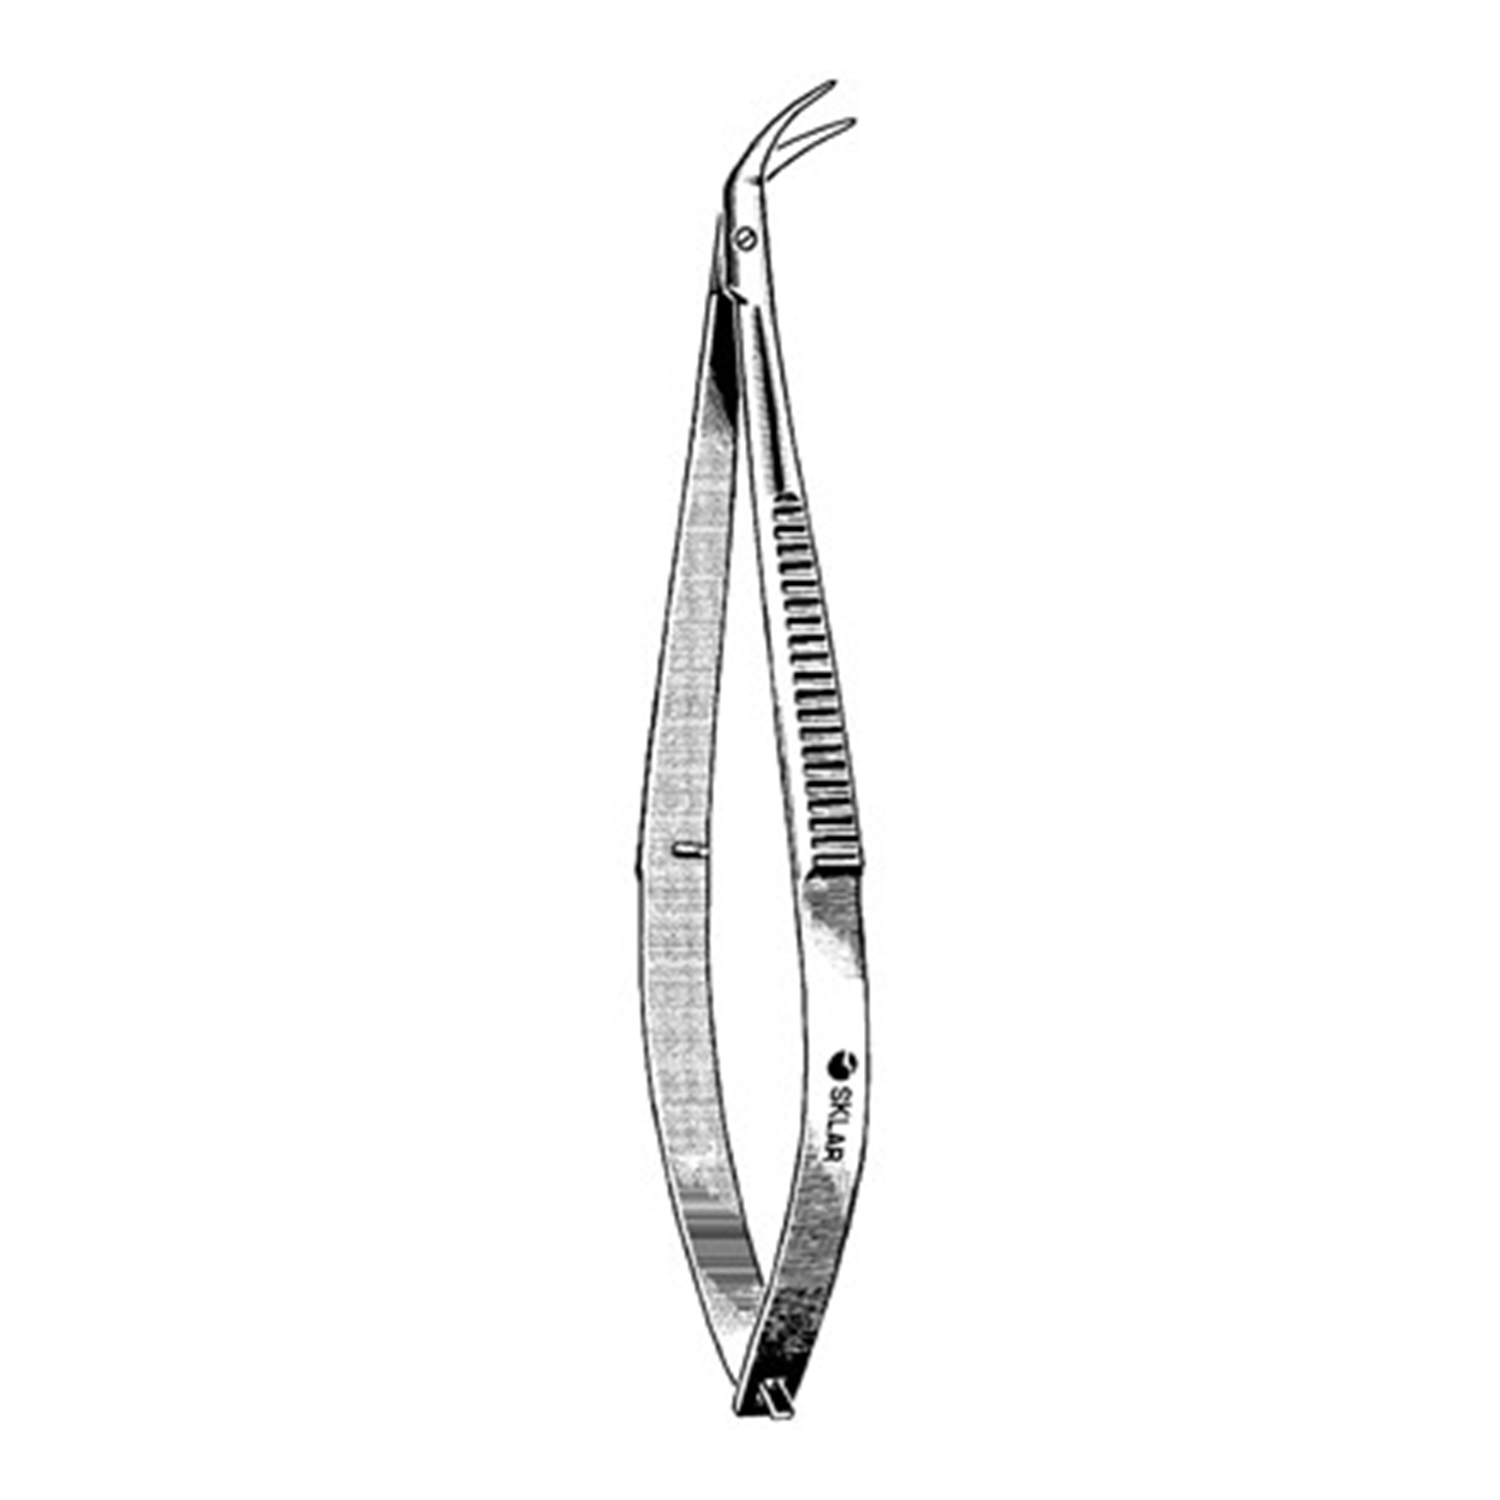 Castroviejo Corneal Scissors, Miniature, Curved Right, 4 1/4""